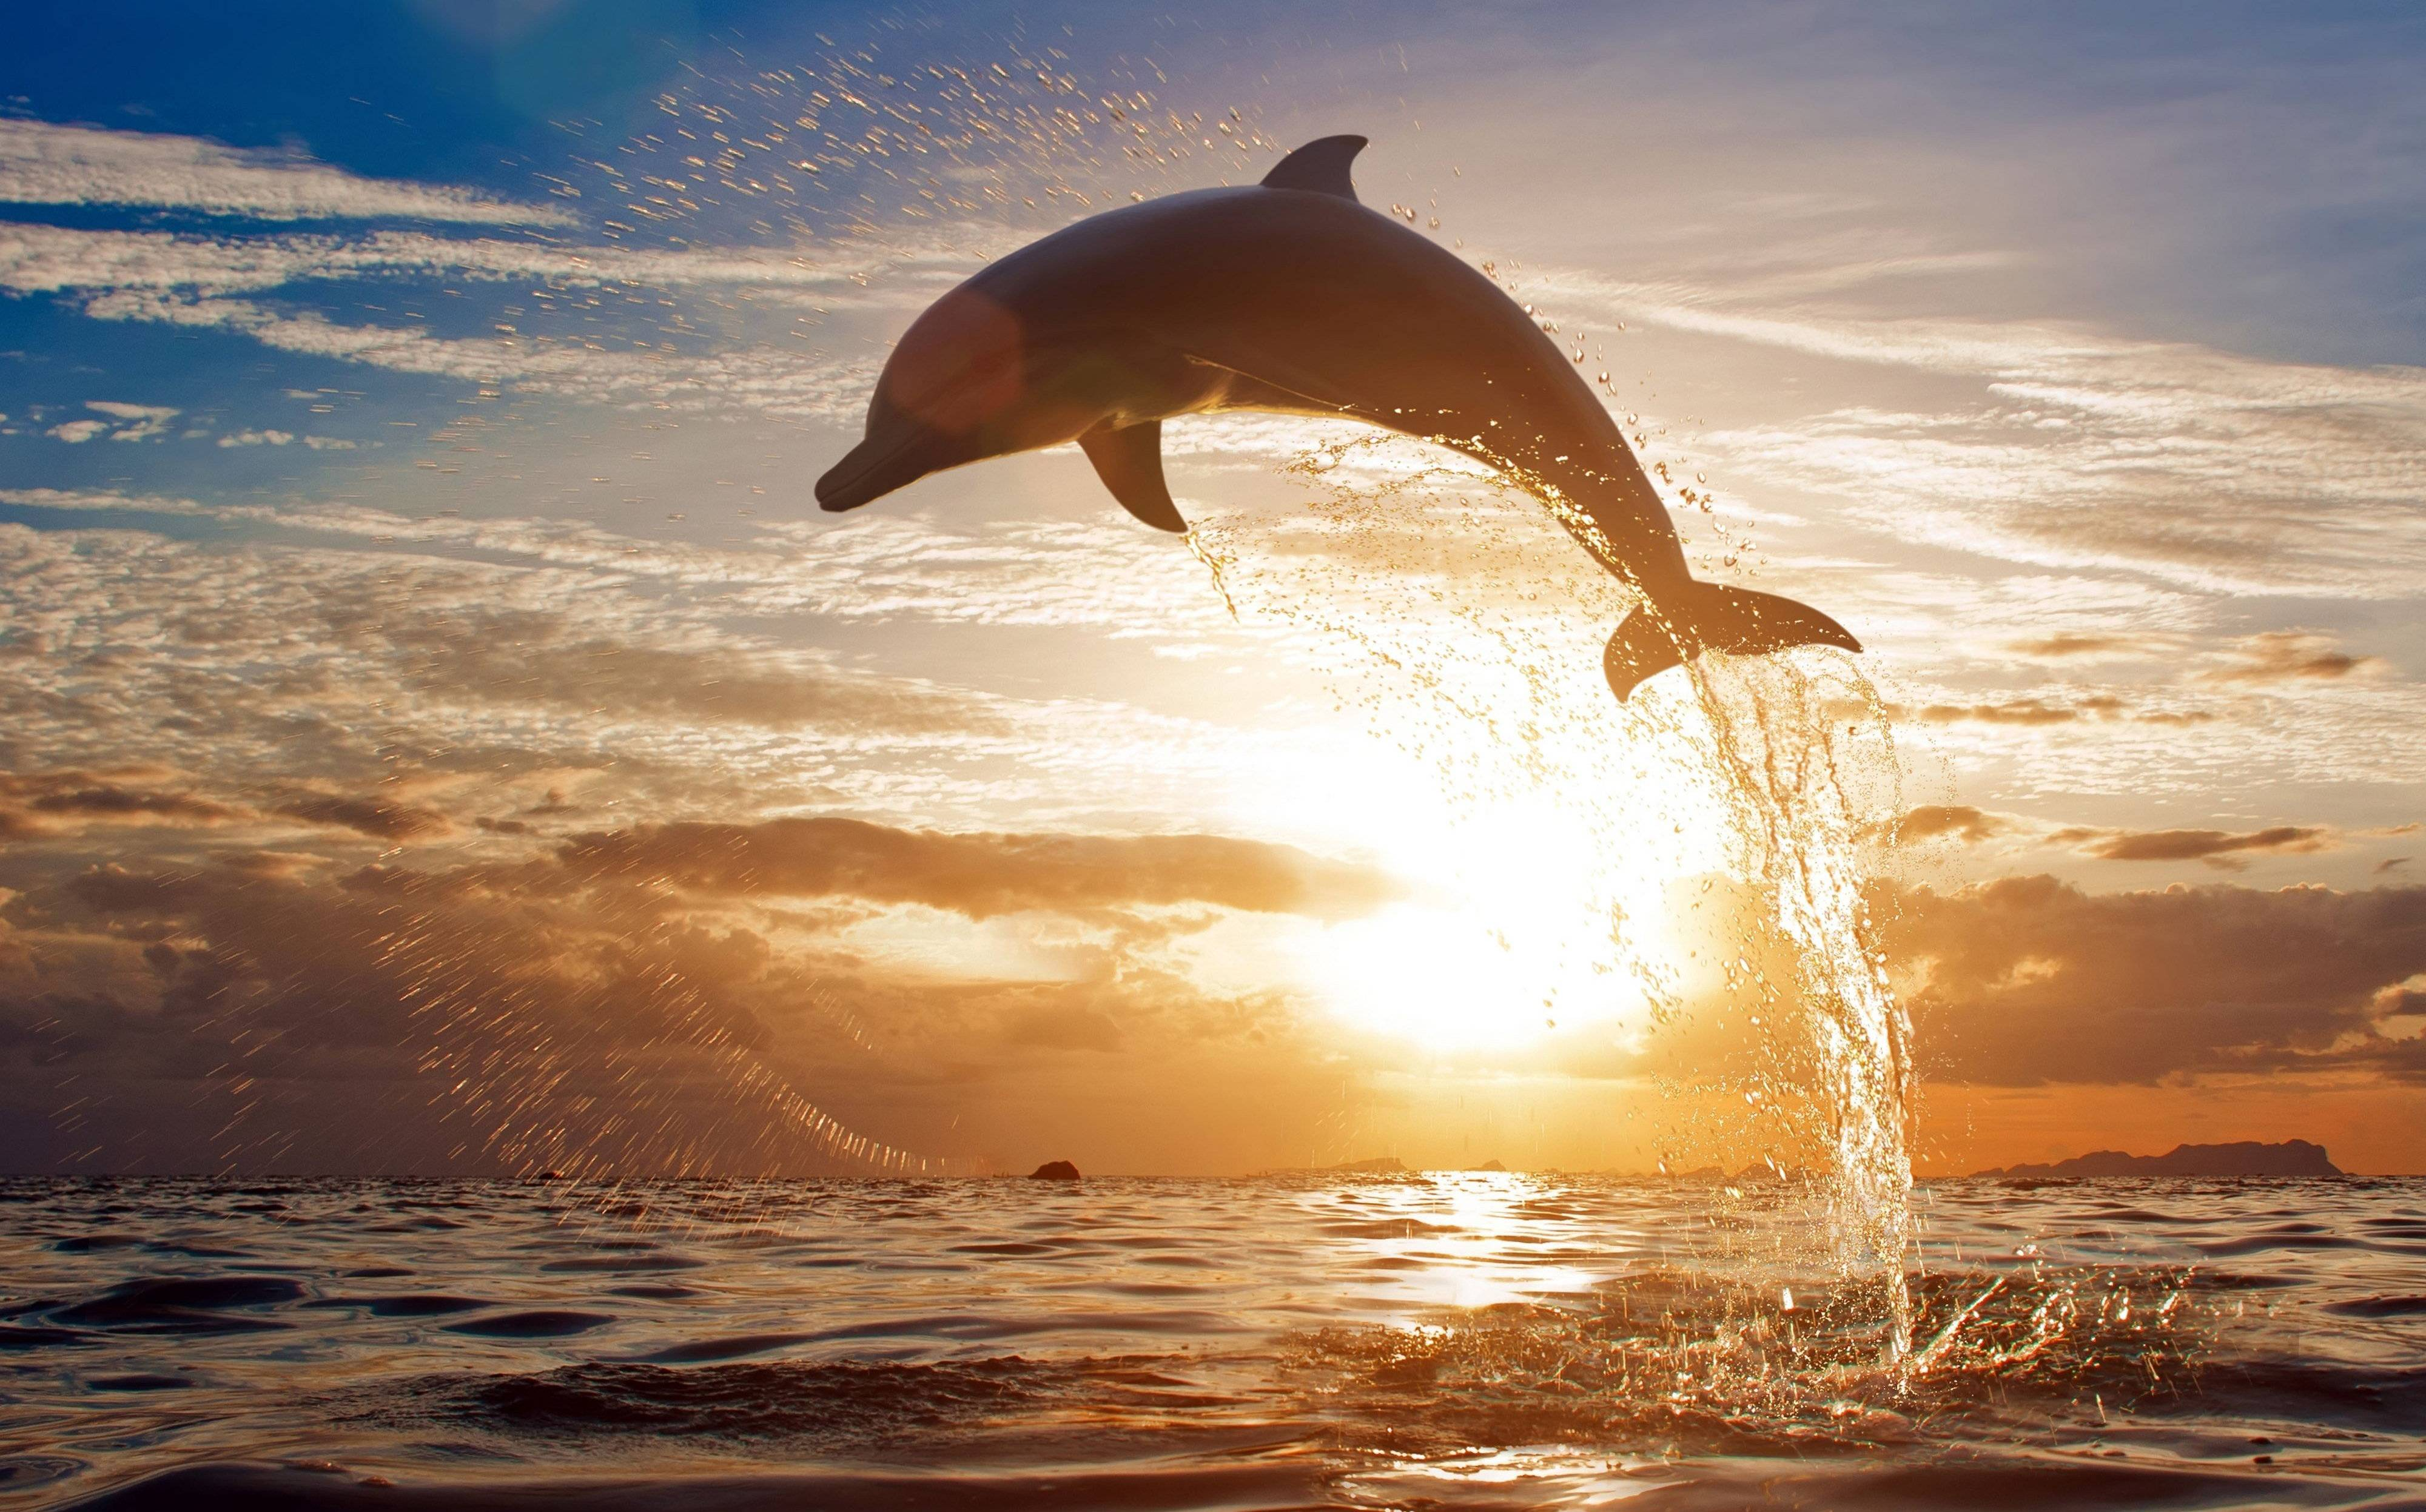 175 Dolphin Wallpapers | Dolphin Backgrounds Page 2